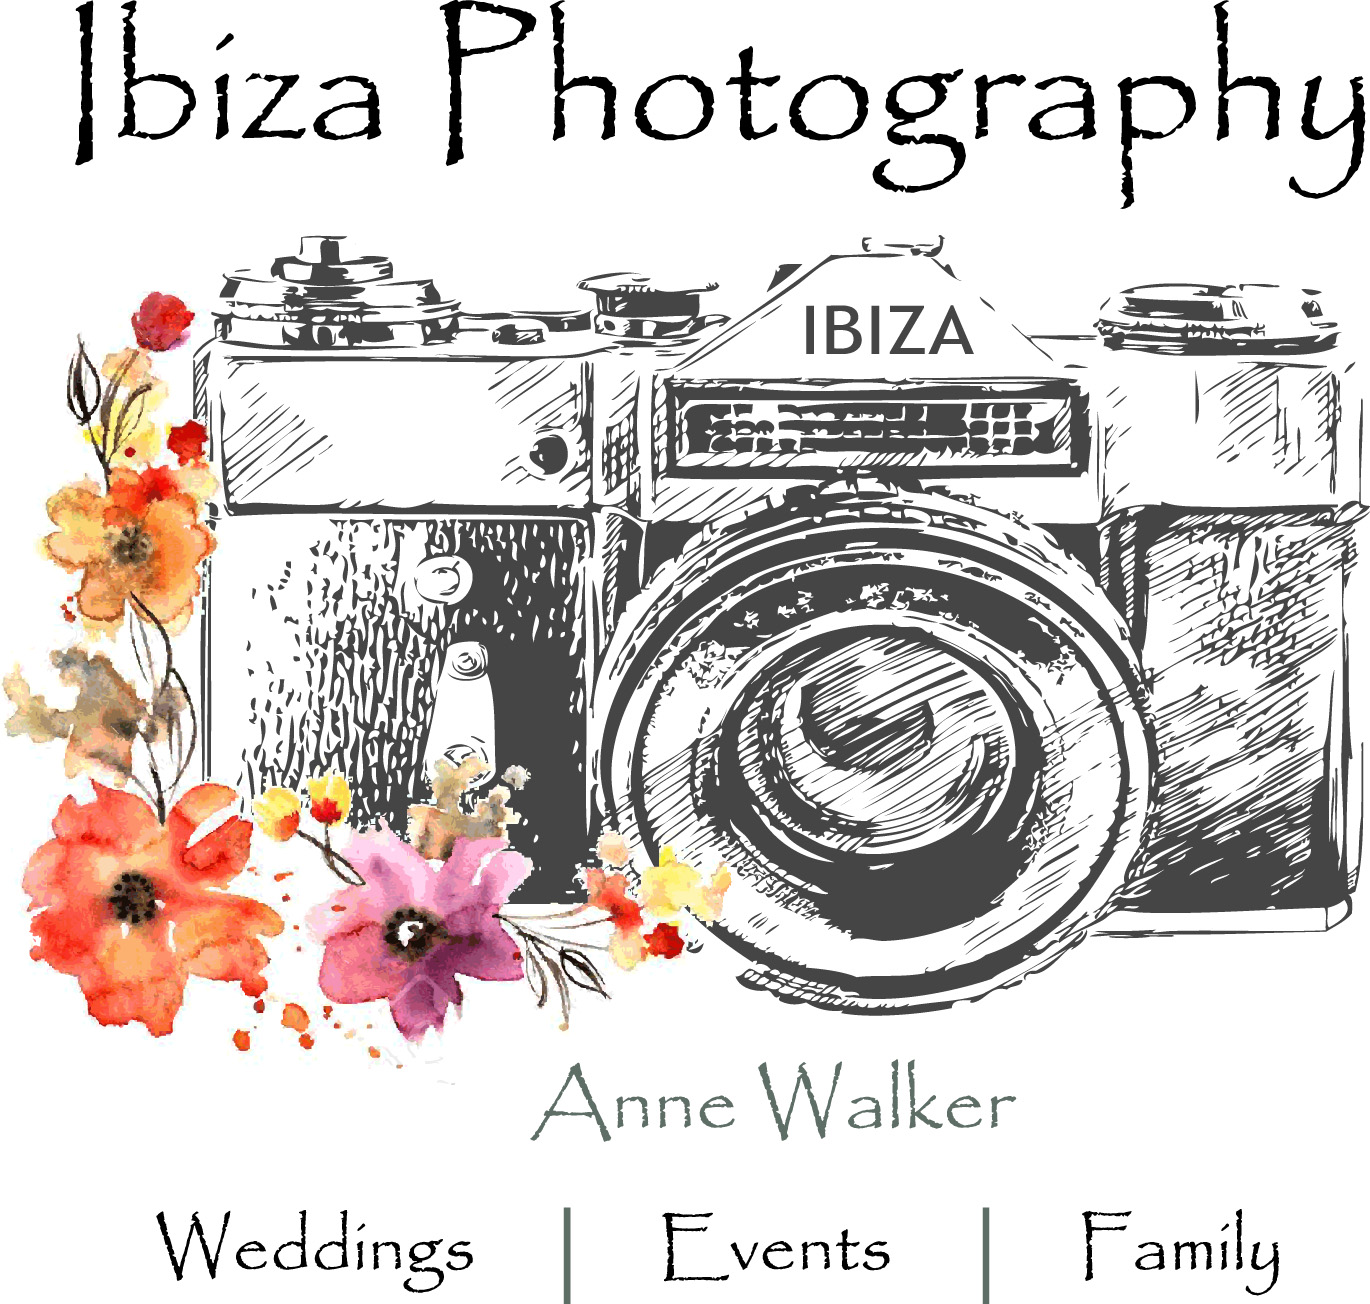 san agustin ibiza wedding